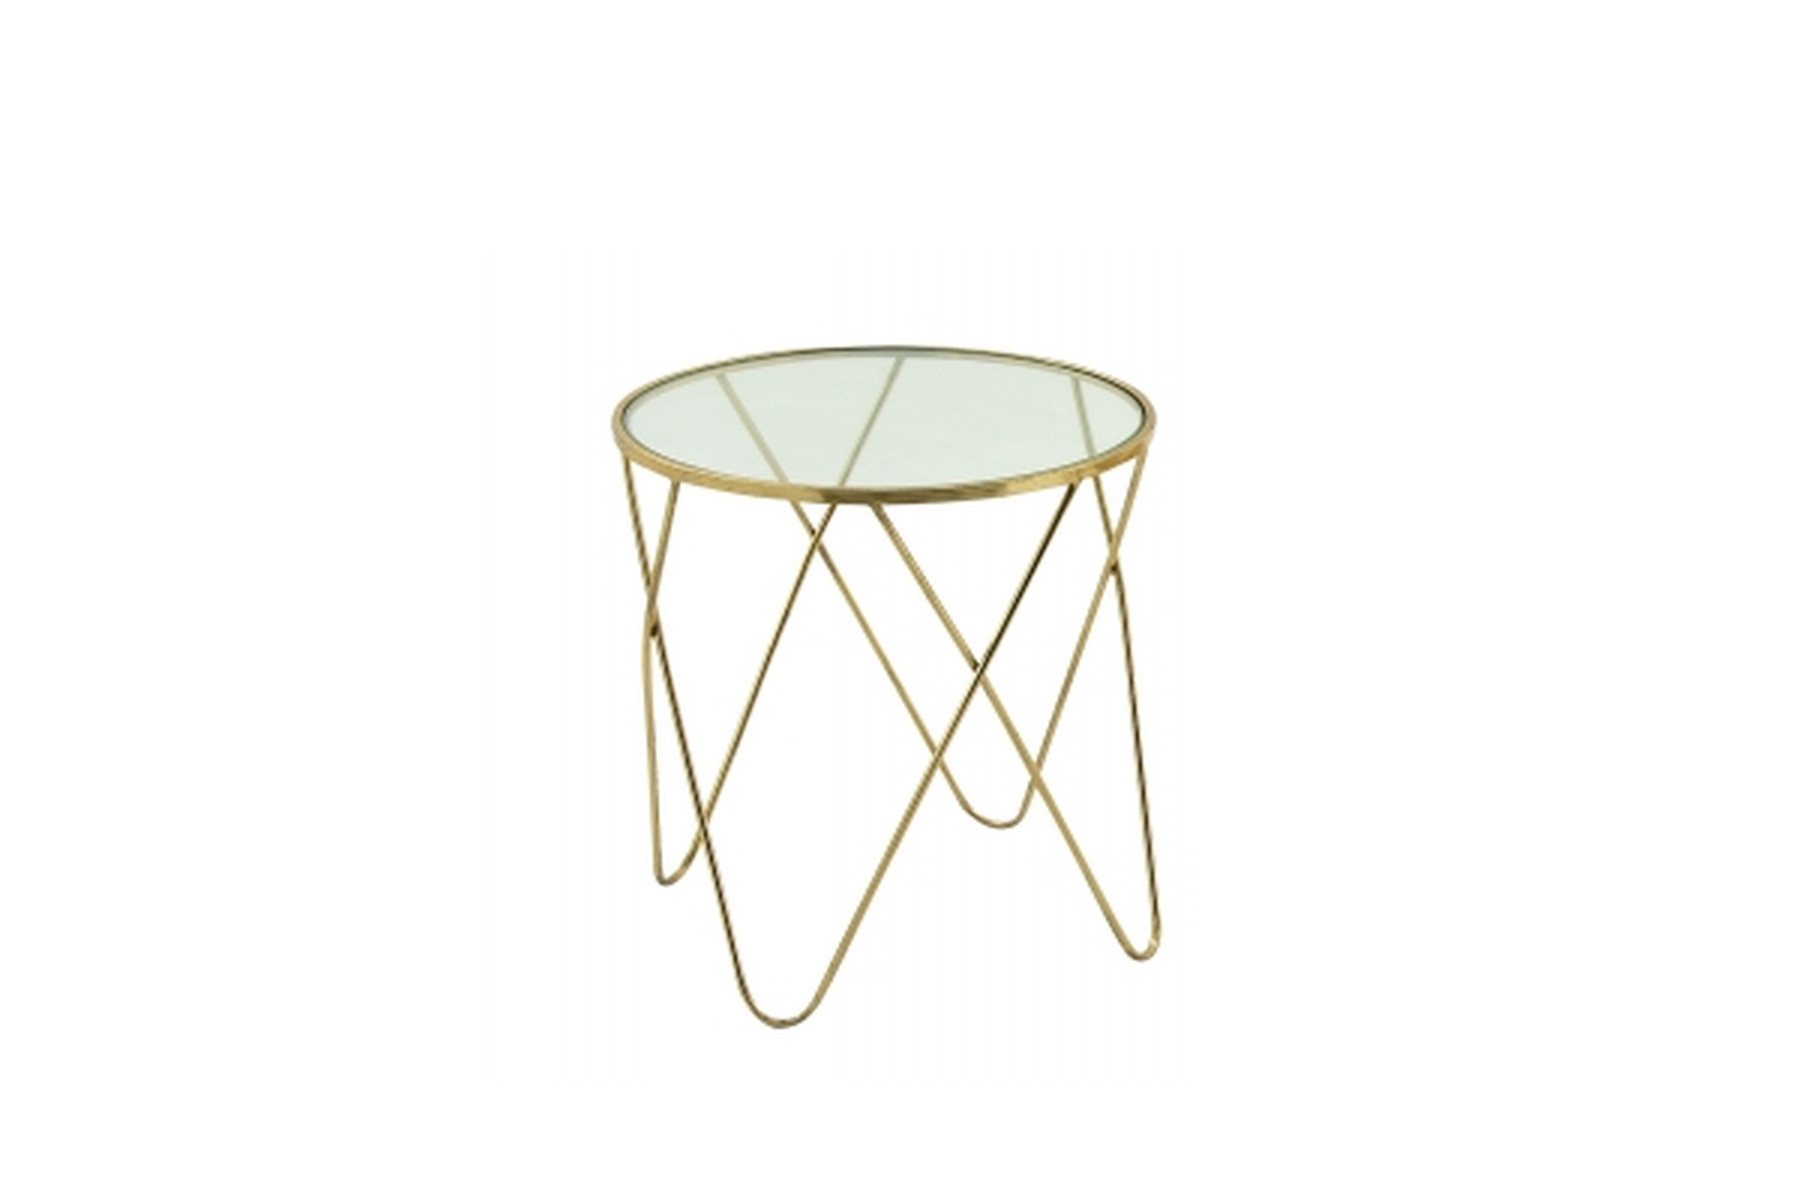 small metal glass accent table oval beach themed home decor red oriental lamp jcpenny bedding pier mirrored reading patio furniture covers round contemporary side tables night